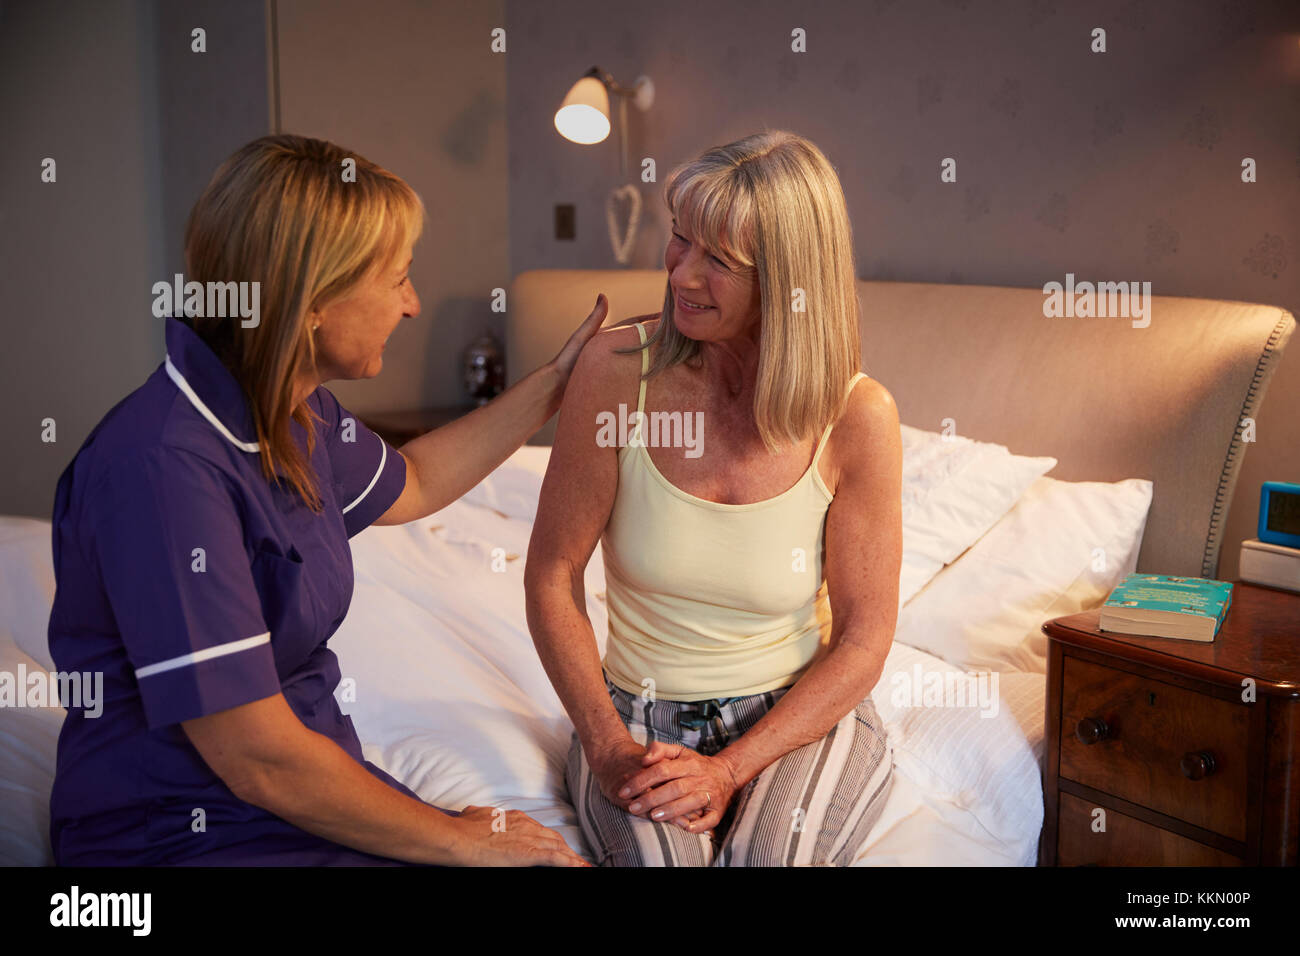 Nurse Talking With Senior Woman In Bedroom On Home Visit Stock Photo